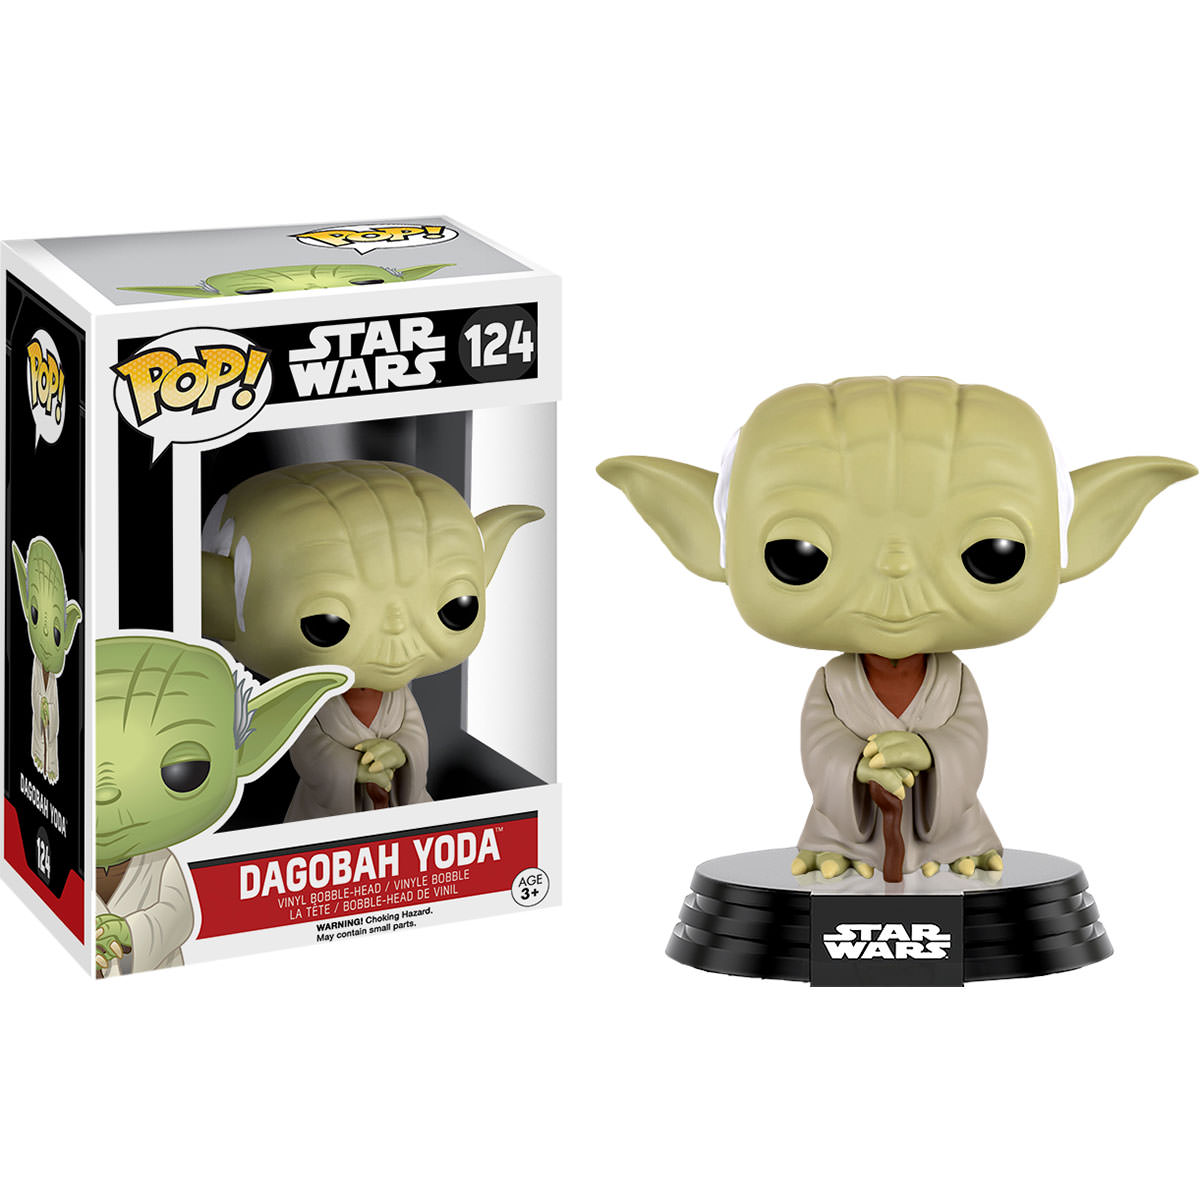 Funko Star Wars Dagobah Yoda Pop Vinyl Bobble Figure At Toys R Us